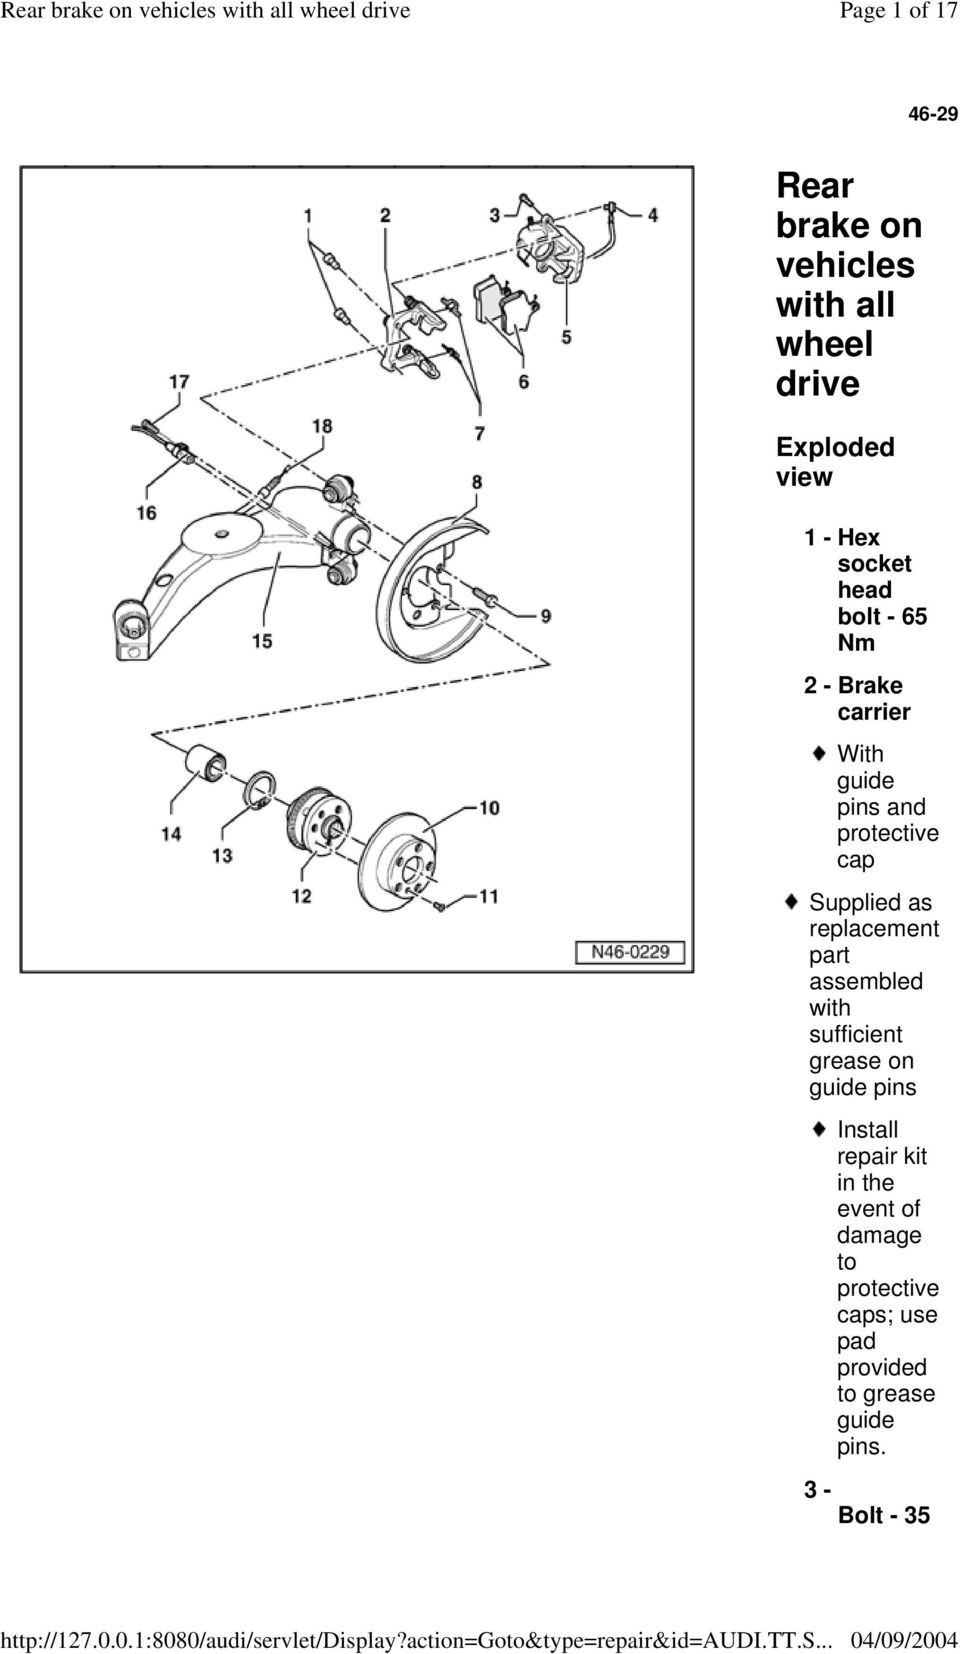 Rear brake on vehicles with all wheel drive - PDF